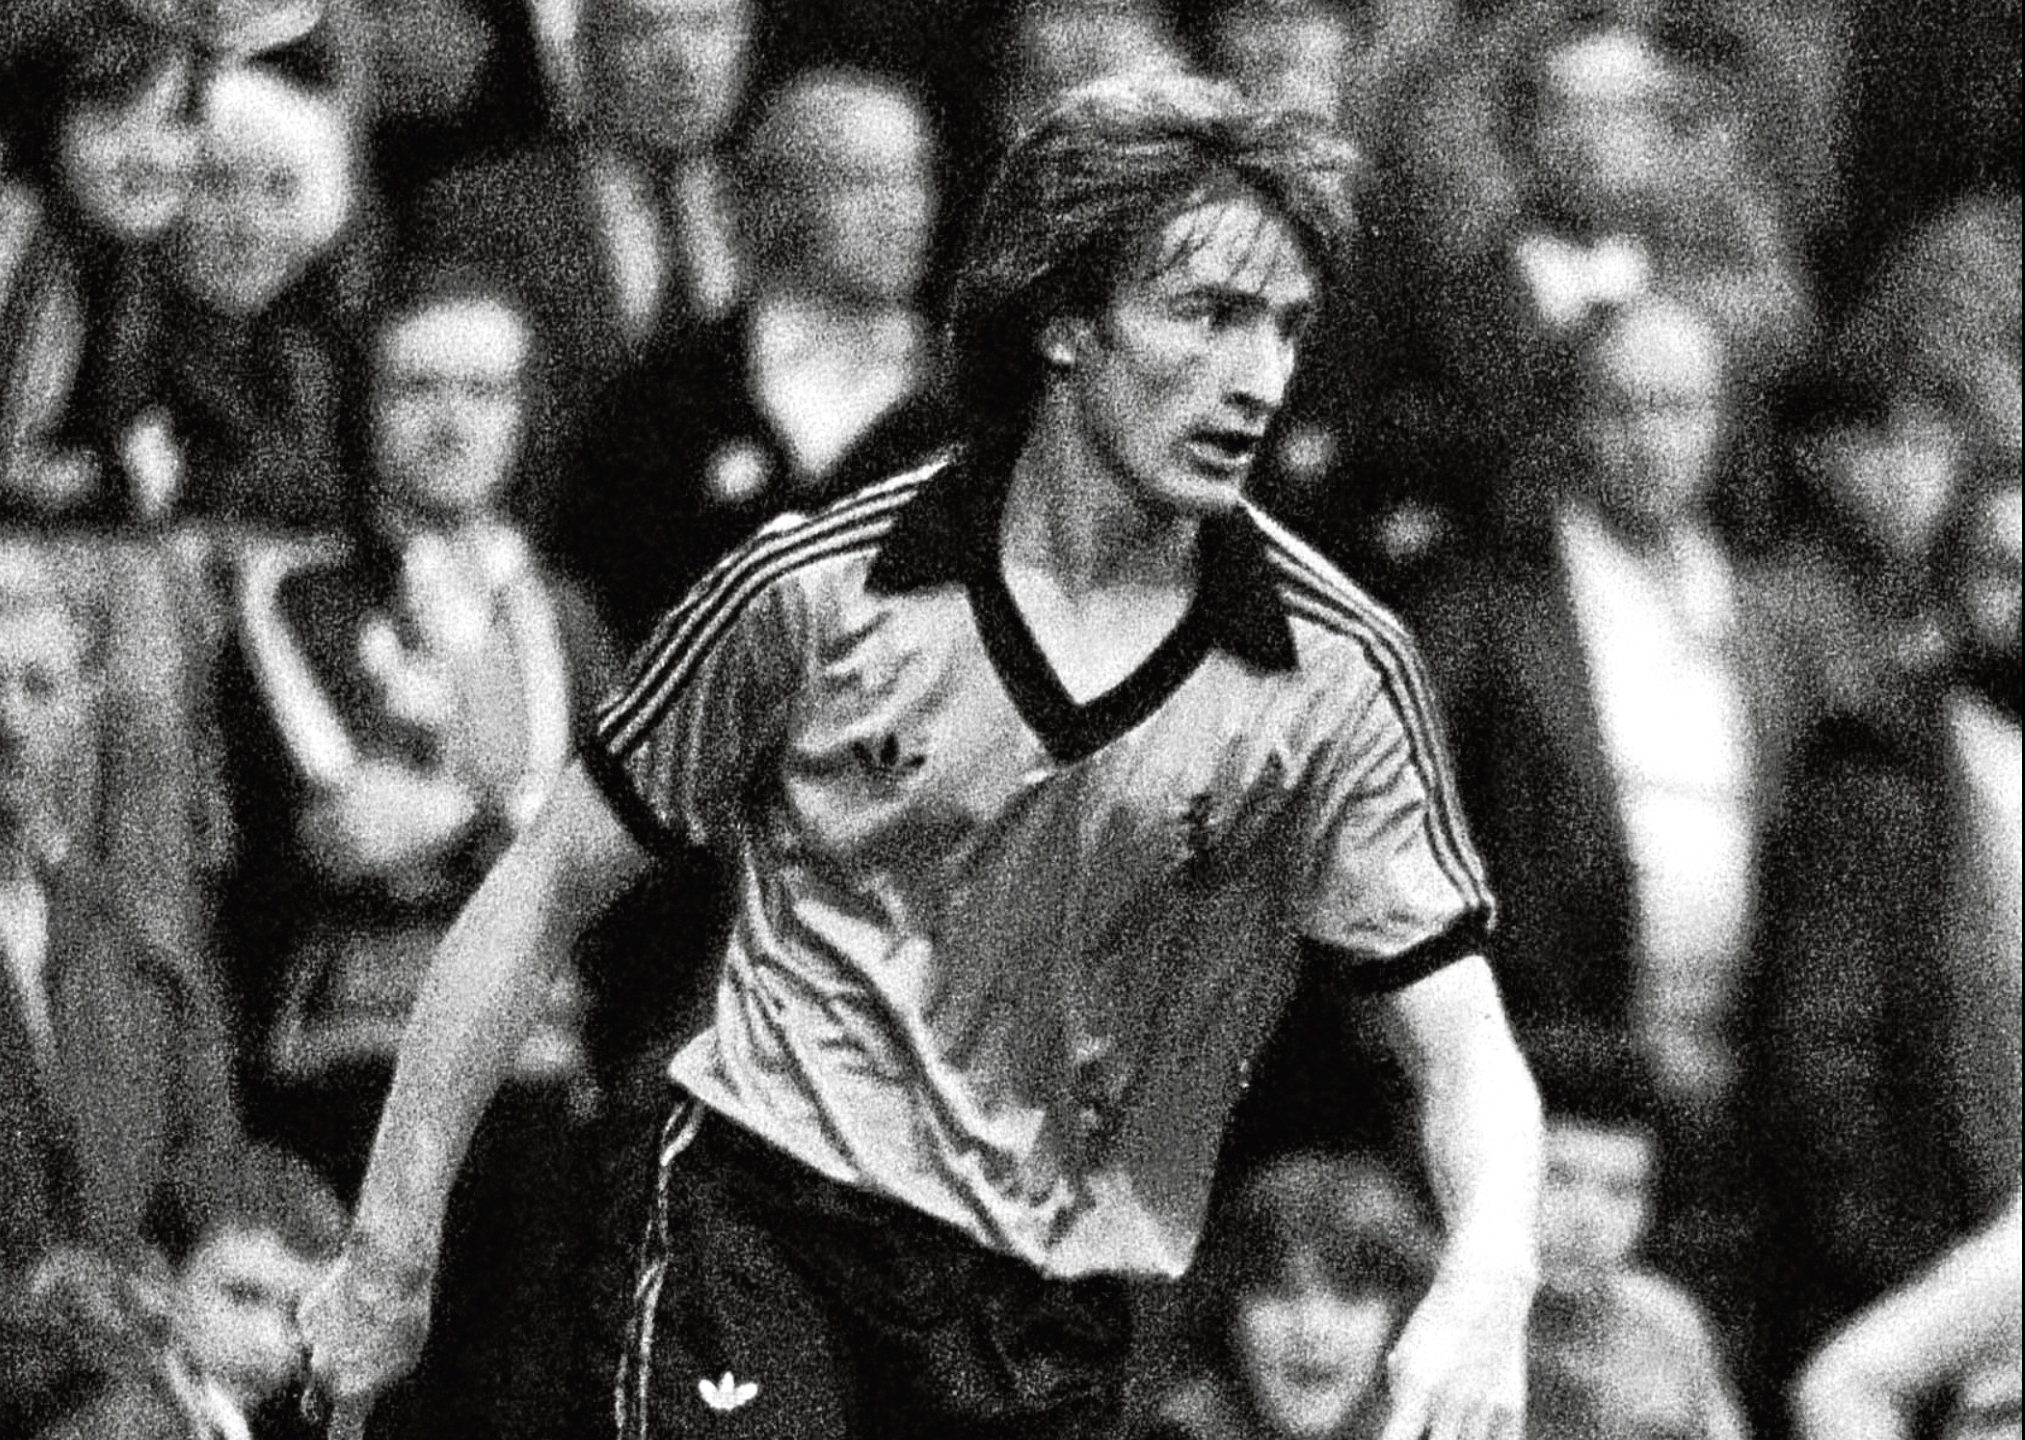 Graeme Payne in action for United in 1979